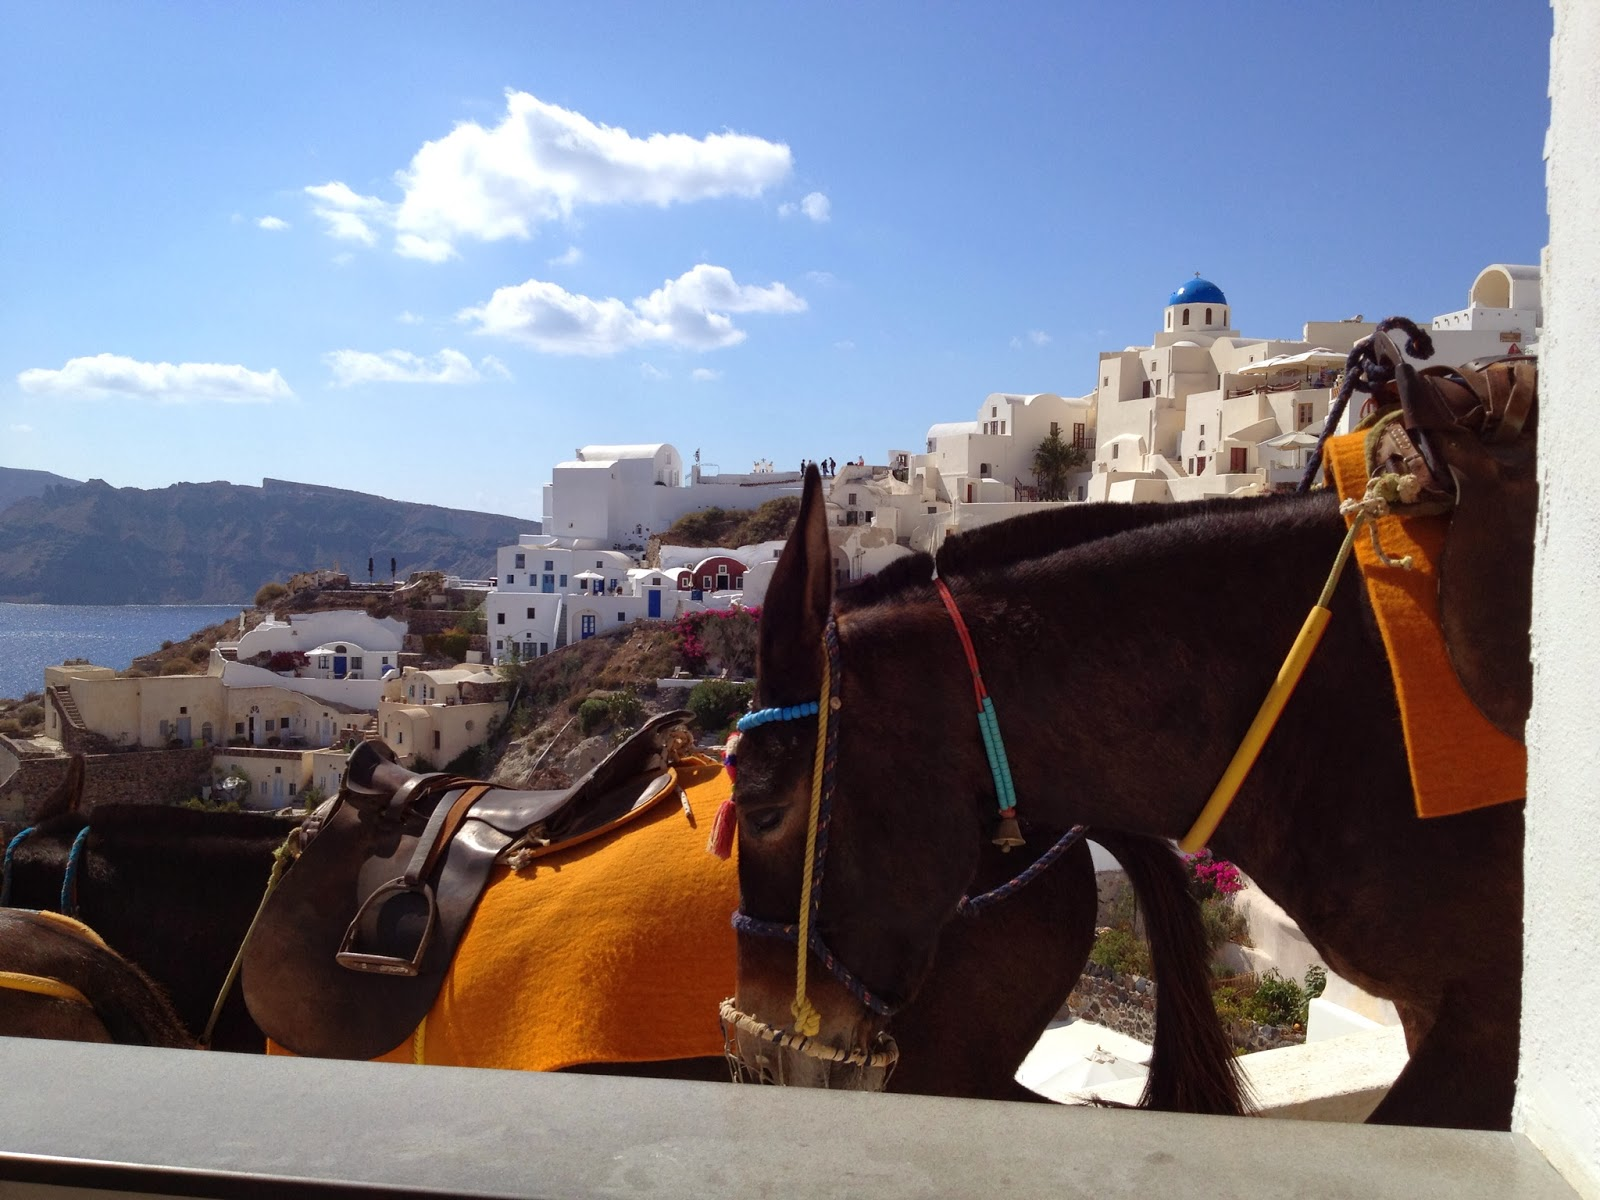 Santorini - Donkeys heading to work